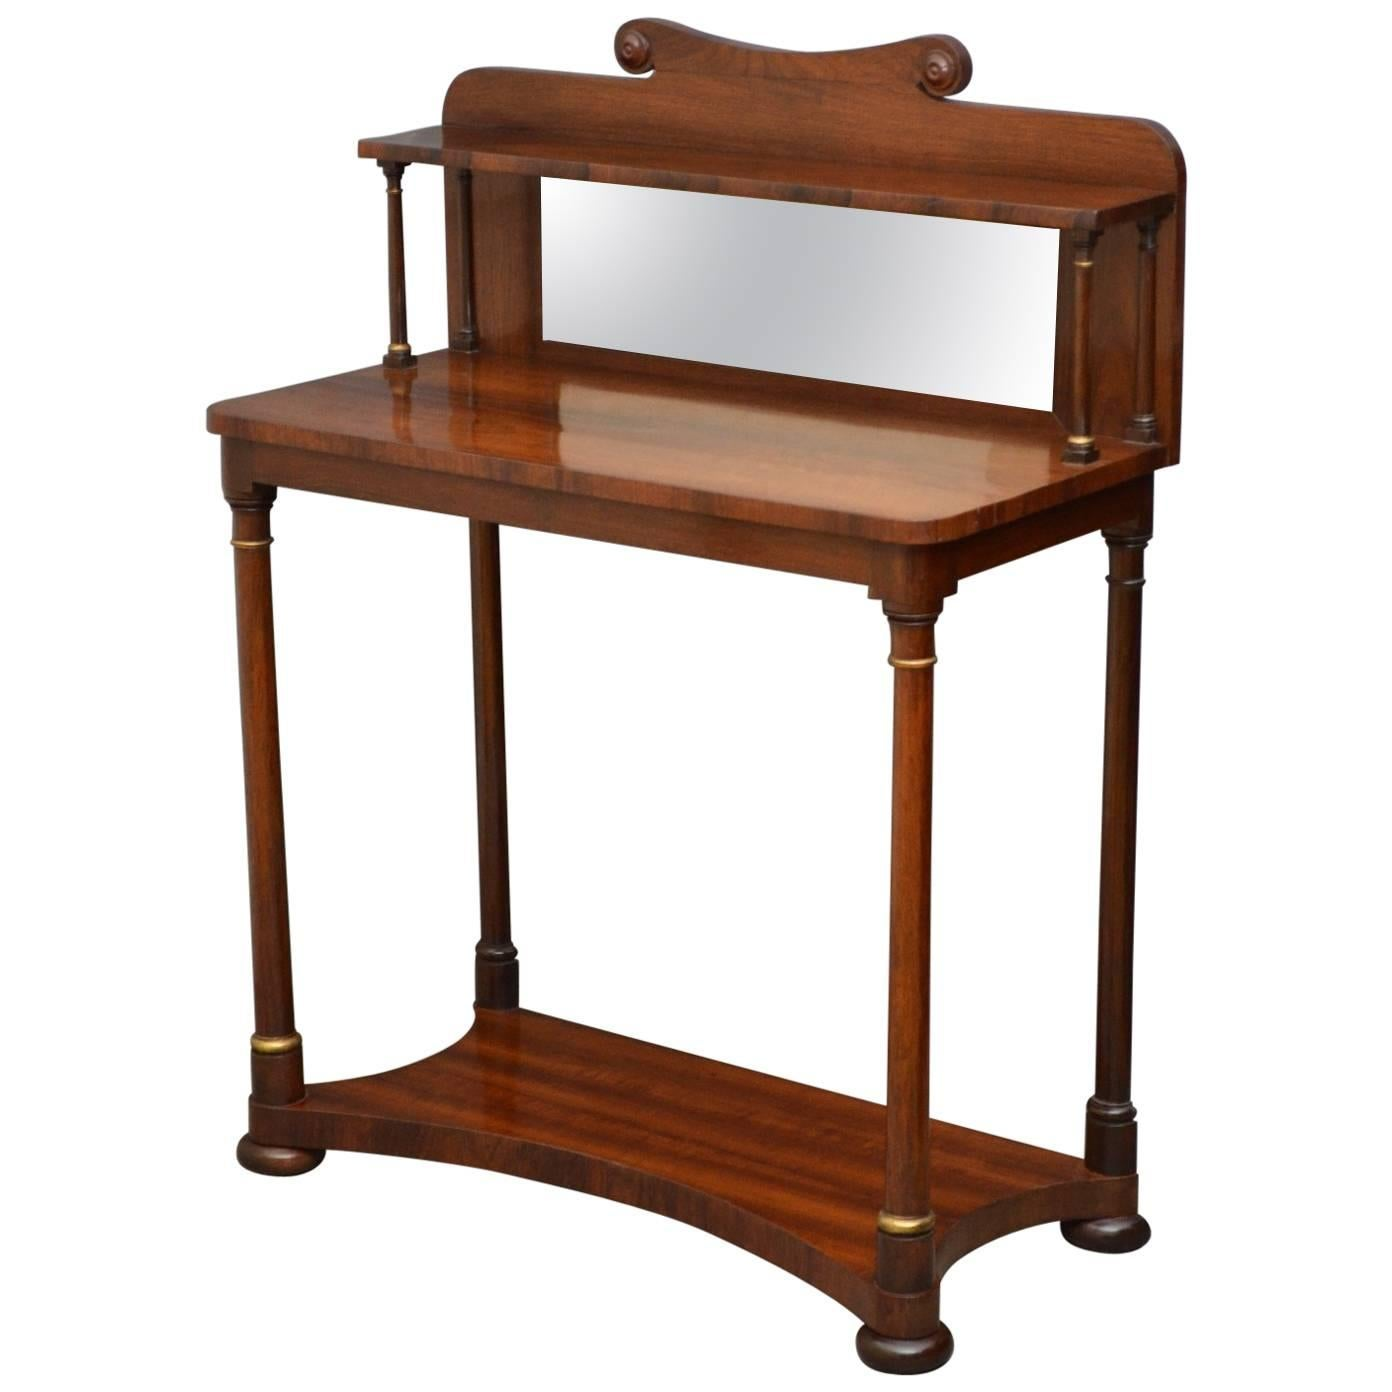 Regency Rosewood Console Table, Hall Table